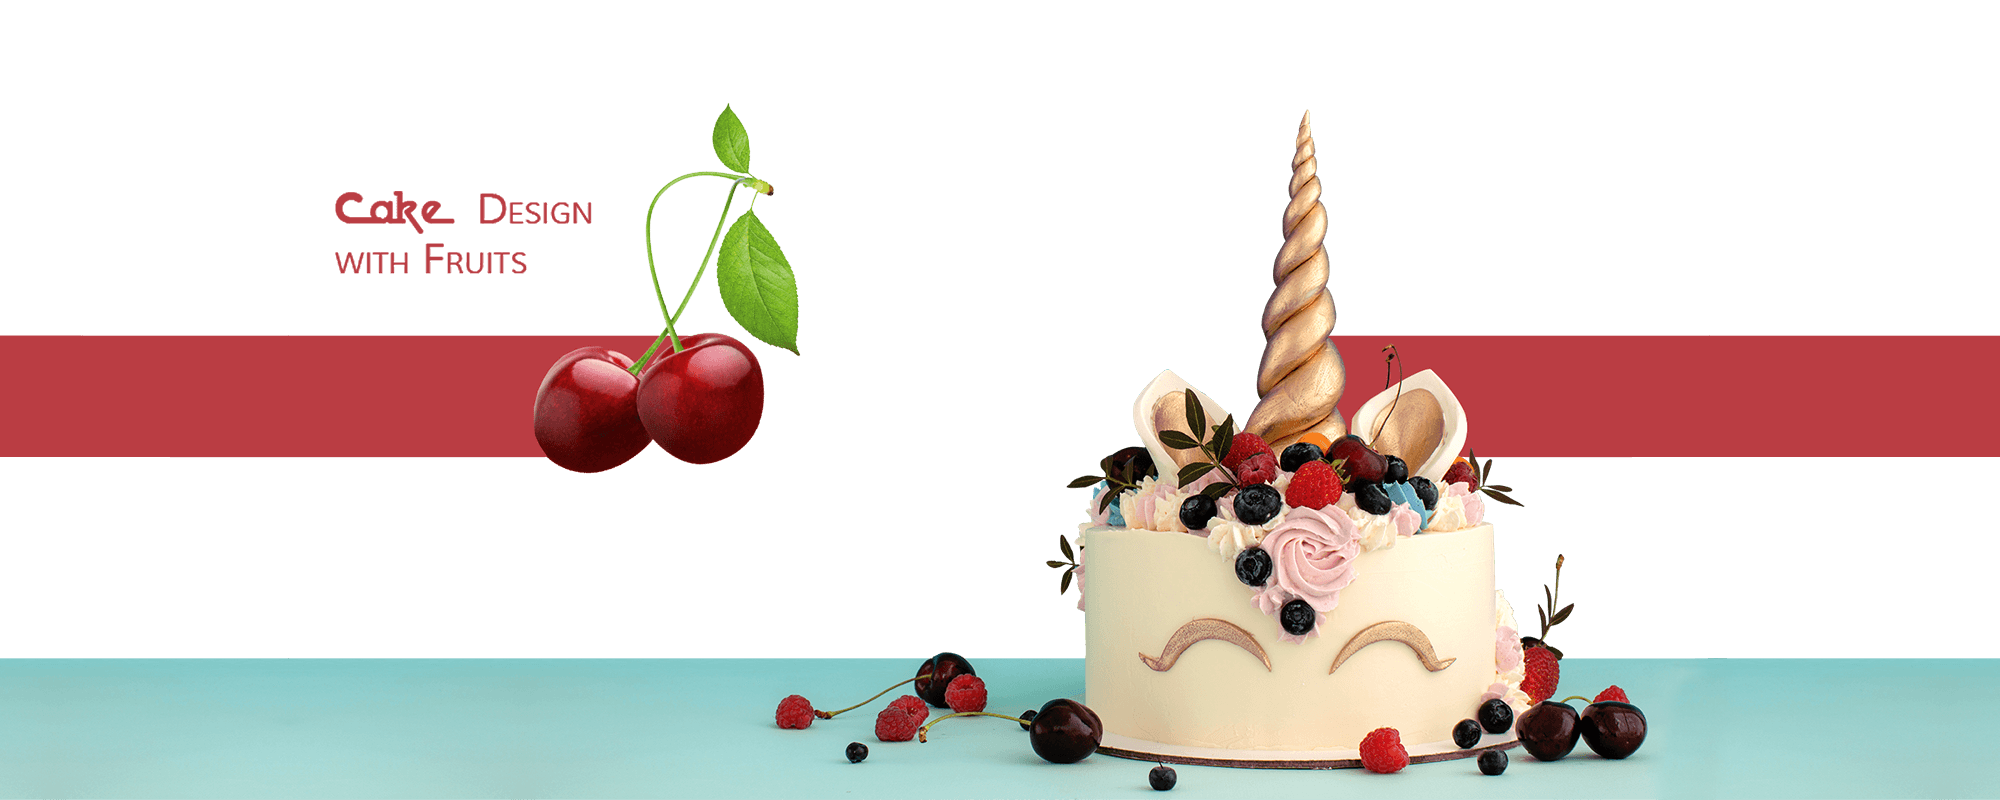 CAKE-DESIGN-WITH-FRUITS